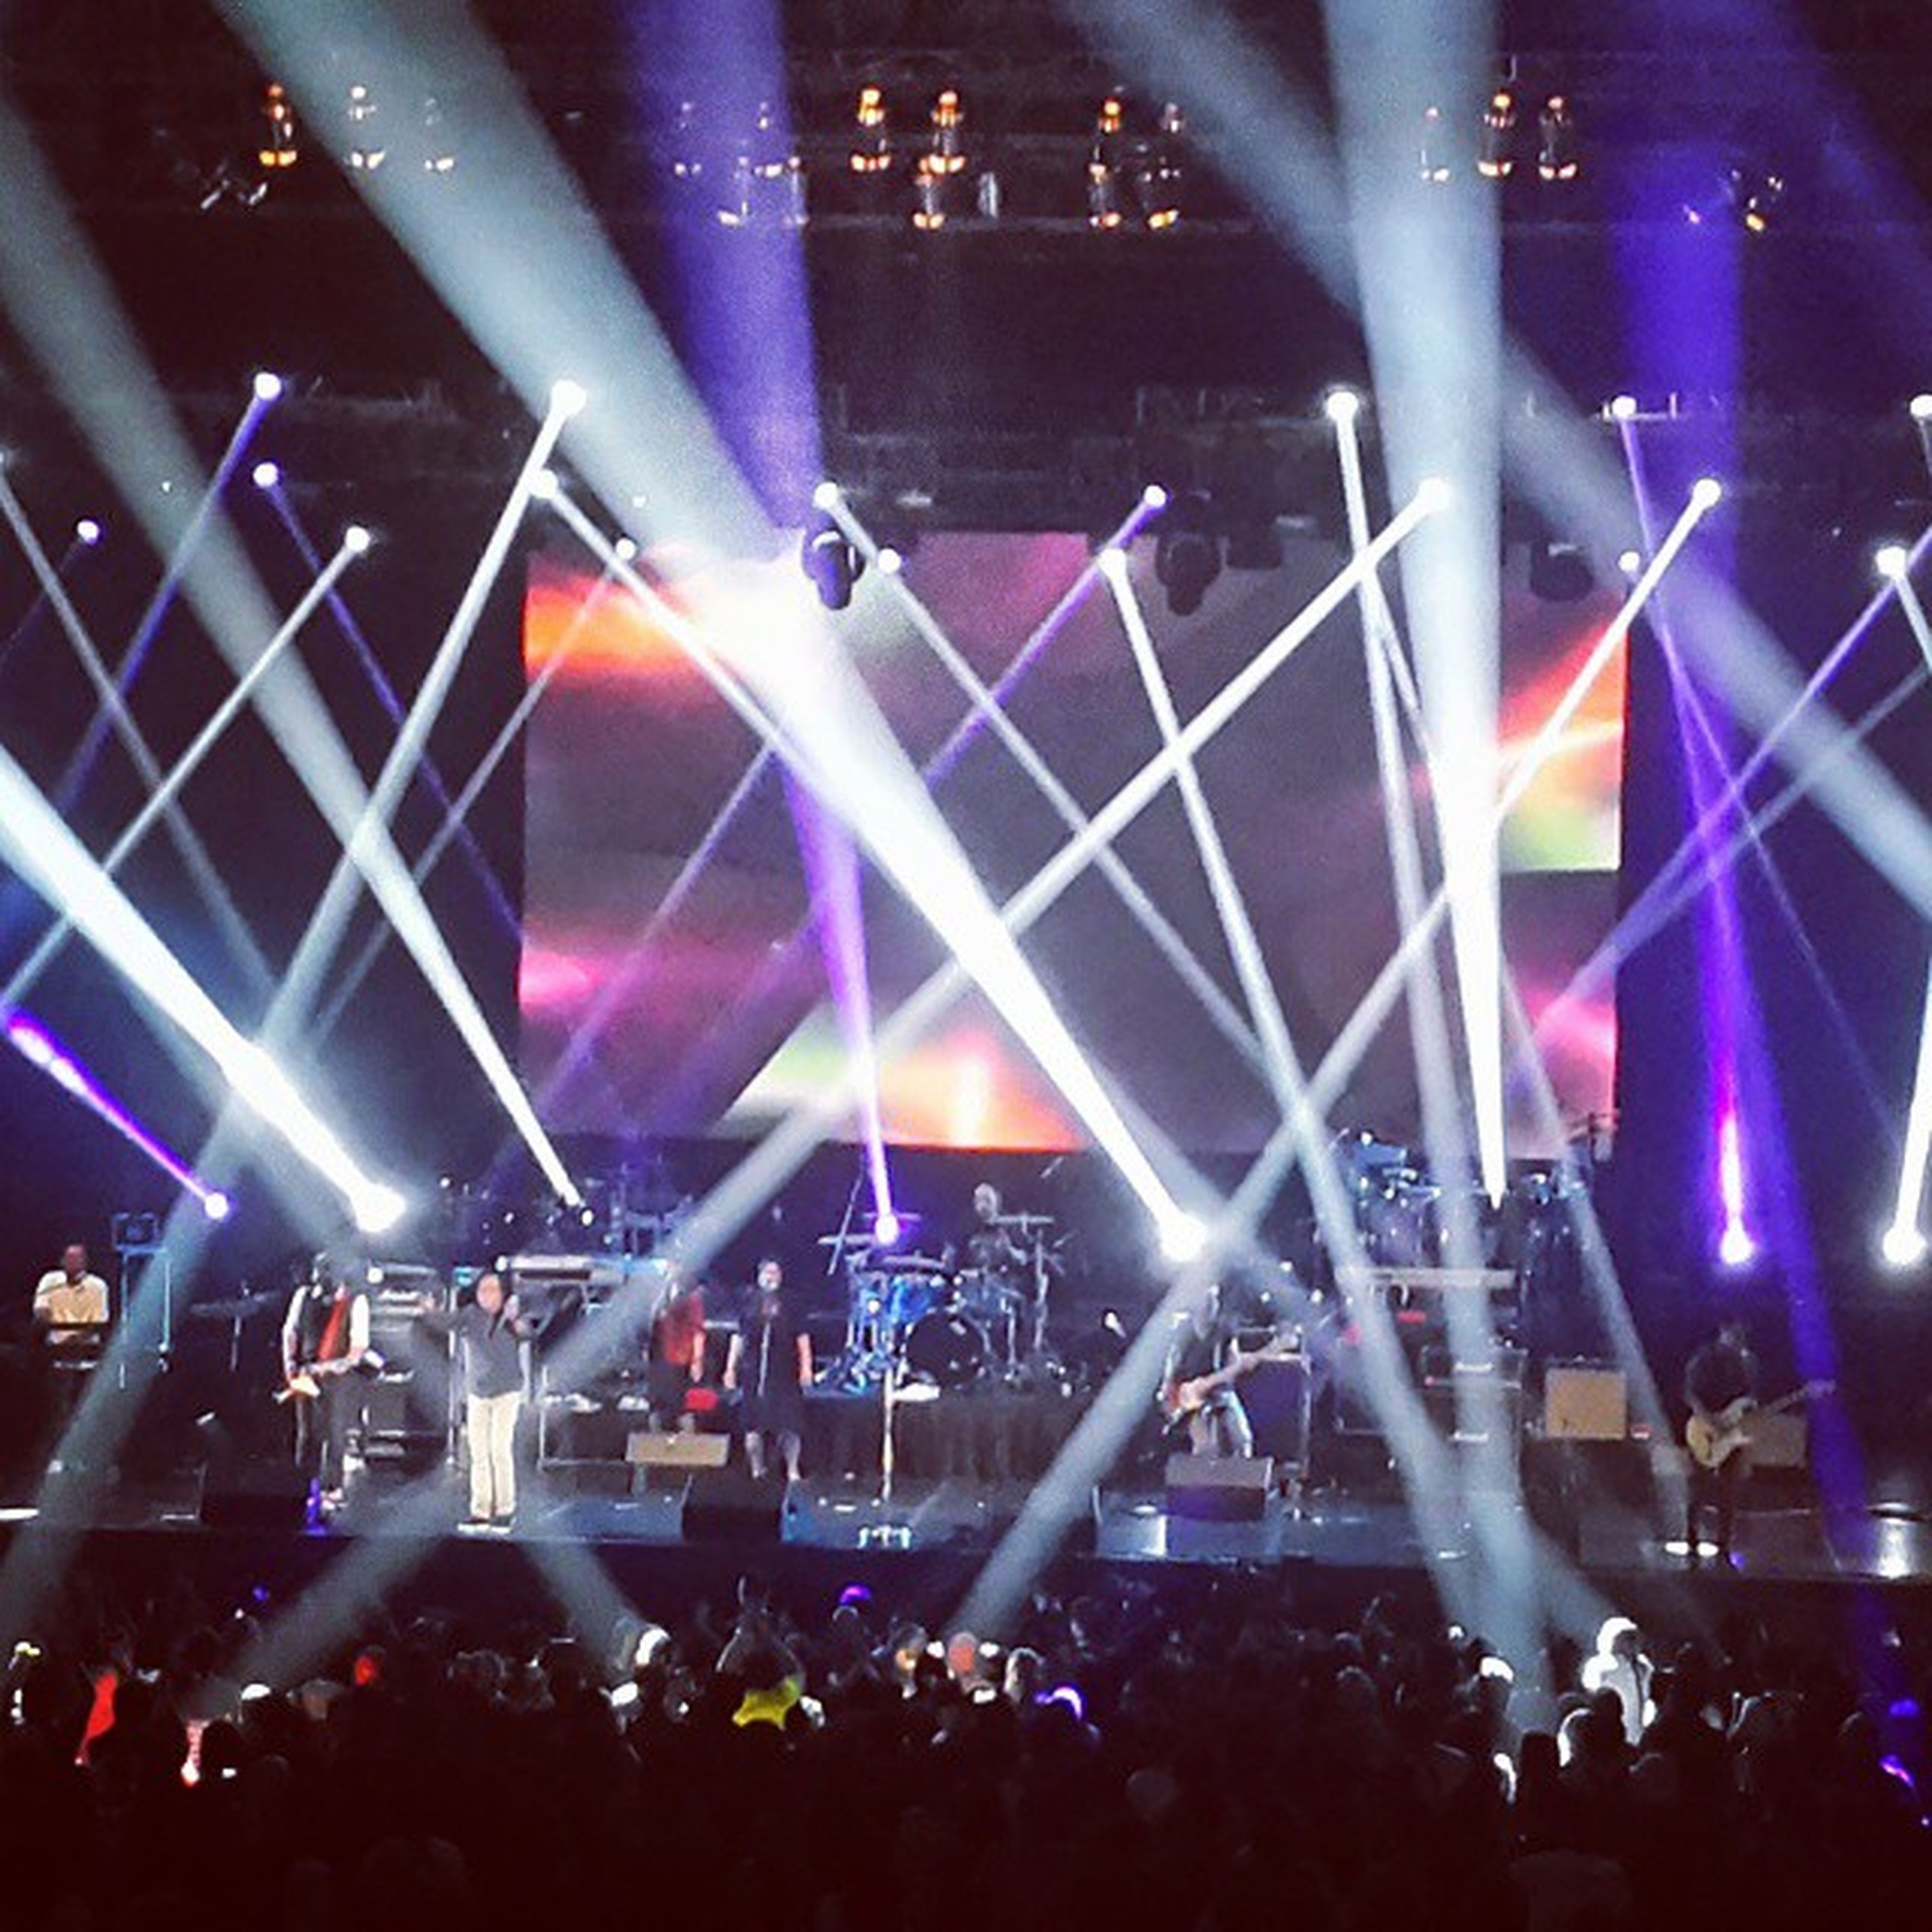 large group of people, illuminated, crowd, lifestyles, arts culture and entertainment, music, nightlife, person, men, leisure activity, night, enjoyment, indoors, stage - performance space, performance, youth culture, popular music concert, event